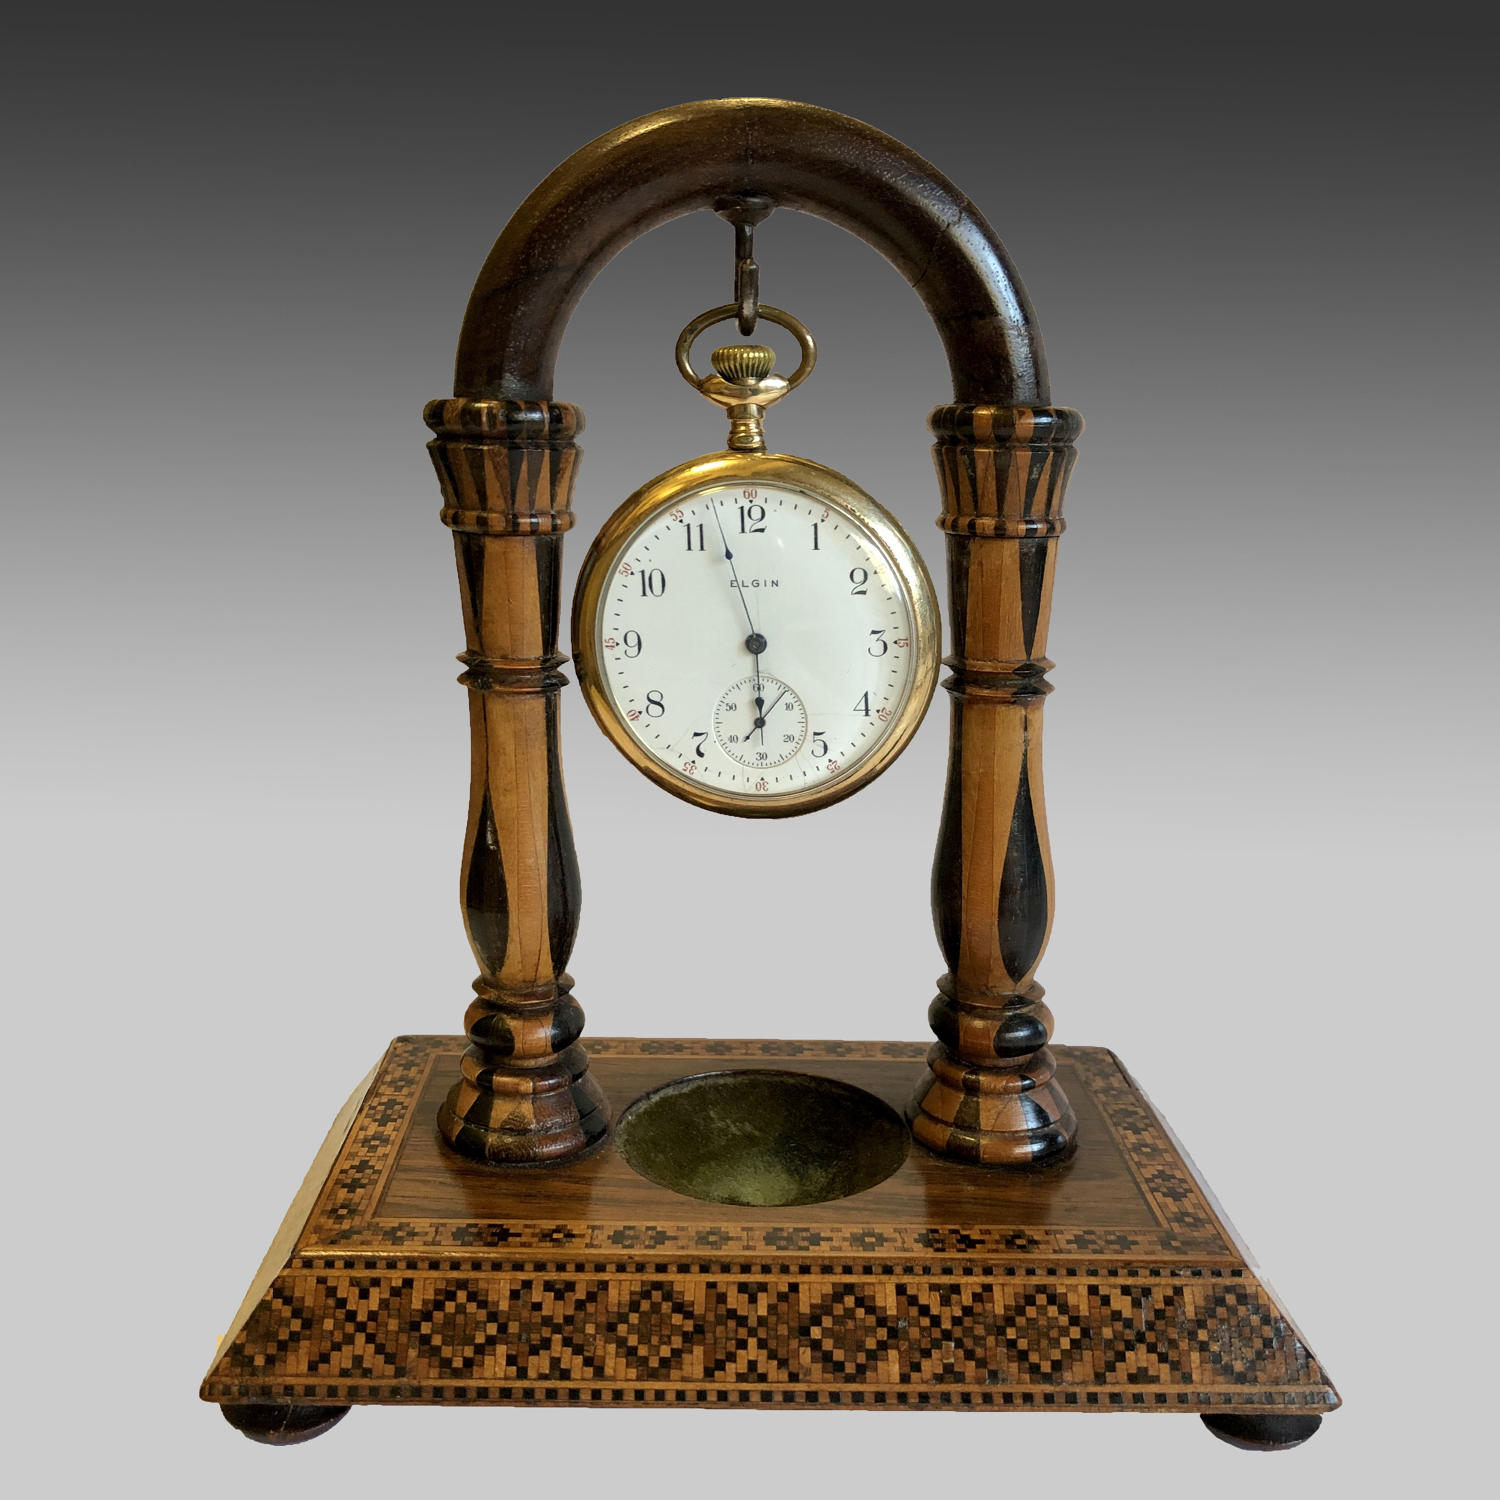 Antique 19th century Tunbridgeware watch stand